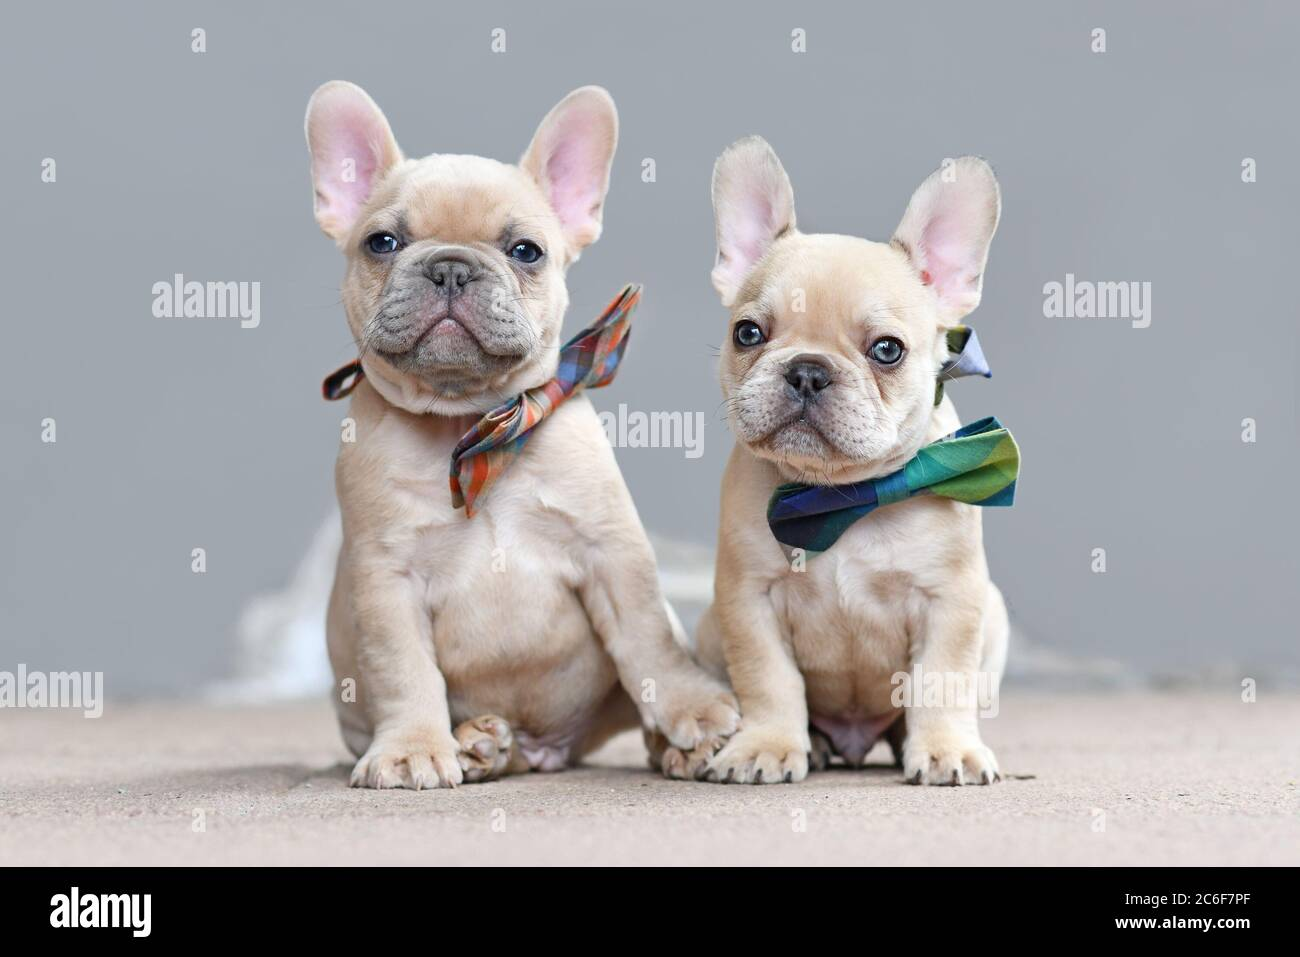 Two Cute Lilac Fawn Colored French Bulldog Dog Puppies Wearing Bow Ties While Appearing To Hold Hands Sitting Together In Front Of Gray Wall Stock Photo Alamy